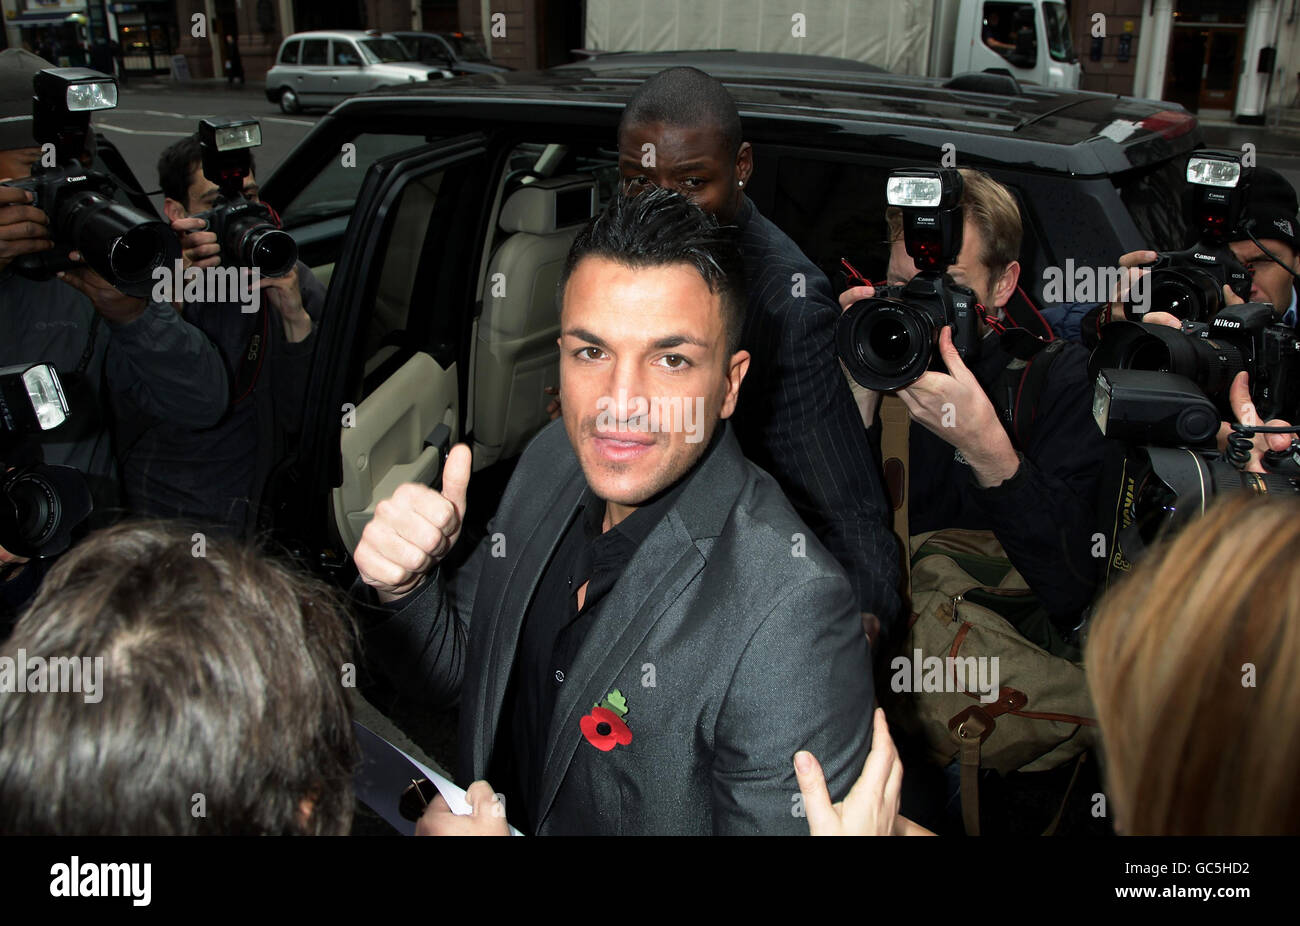 Peter Andre libel case - Stock Image